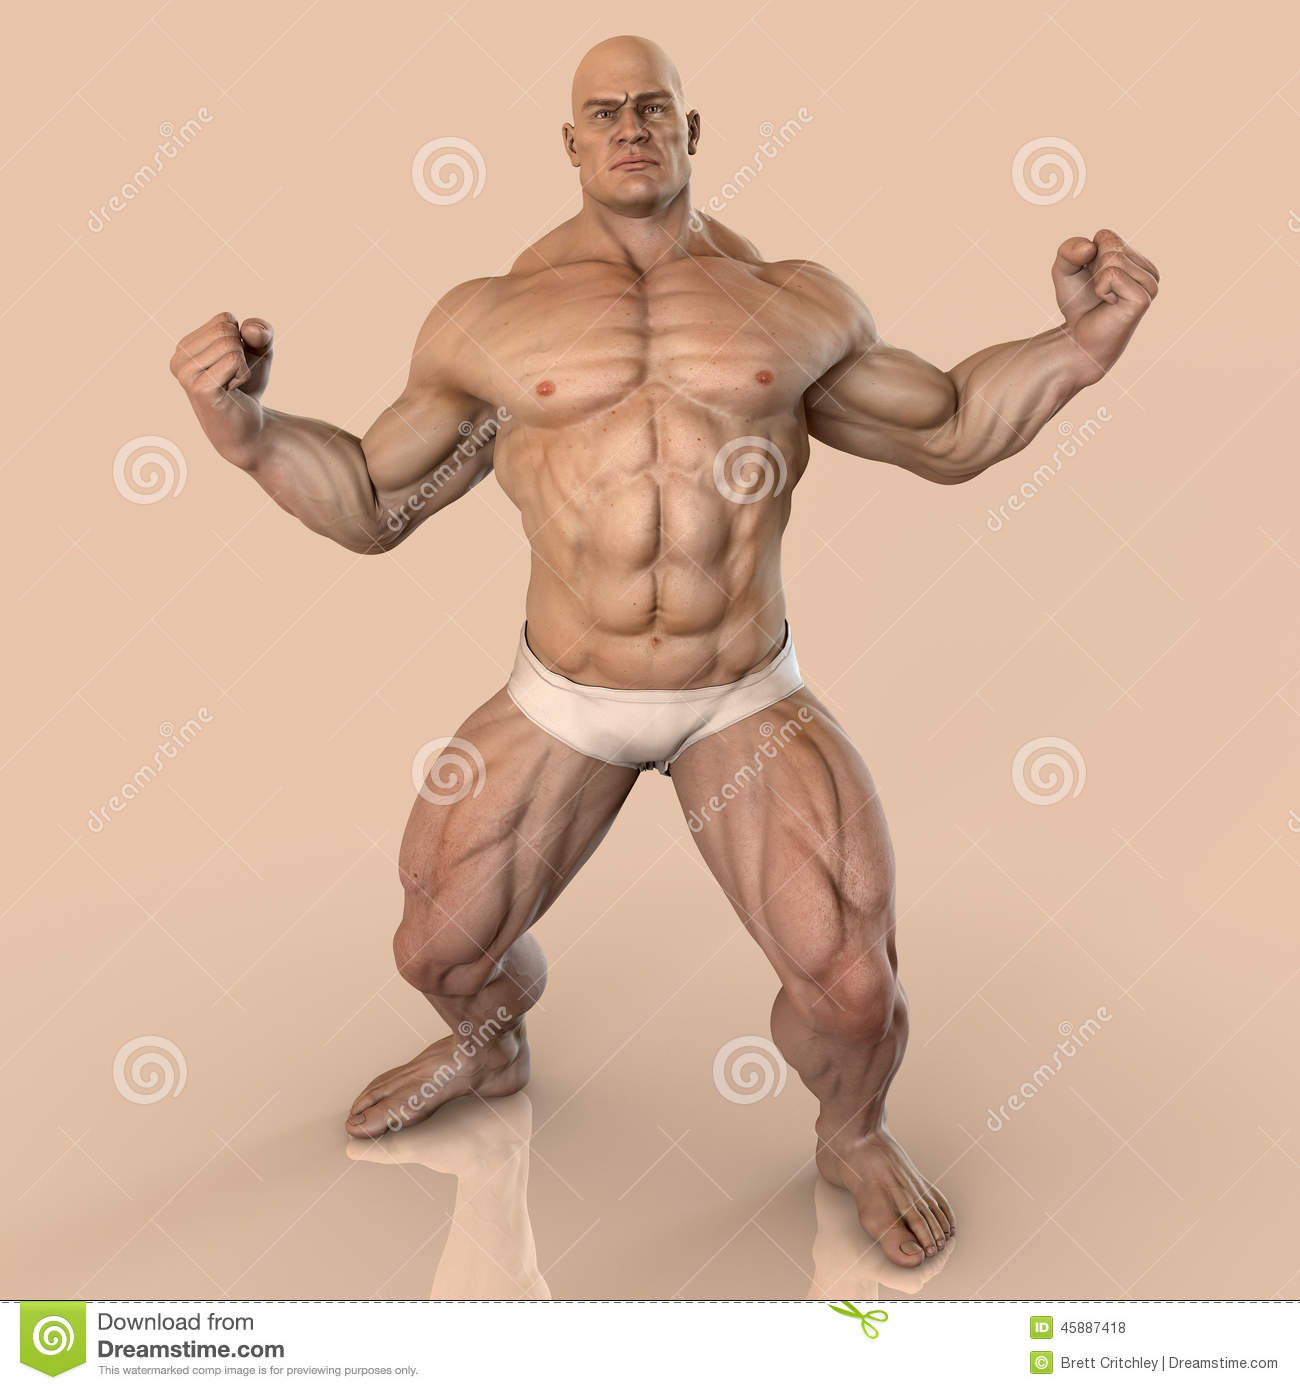 Big muscle gay